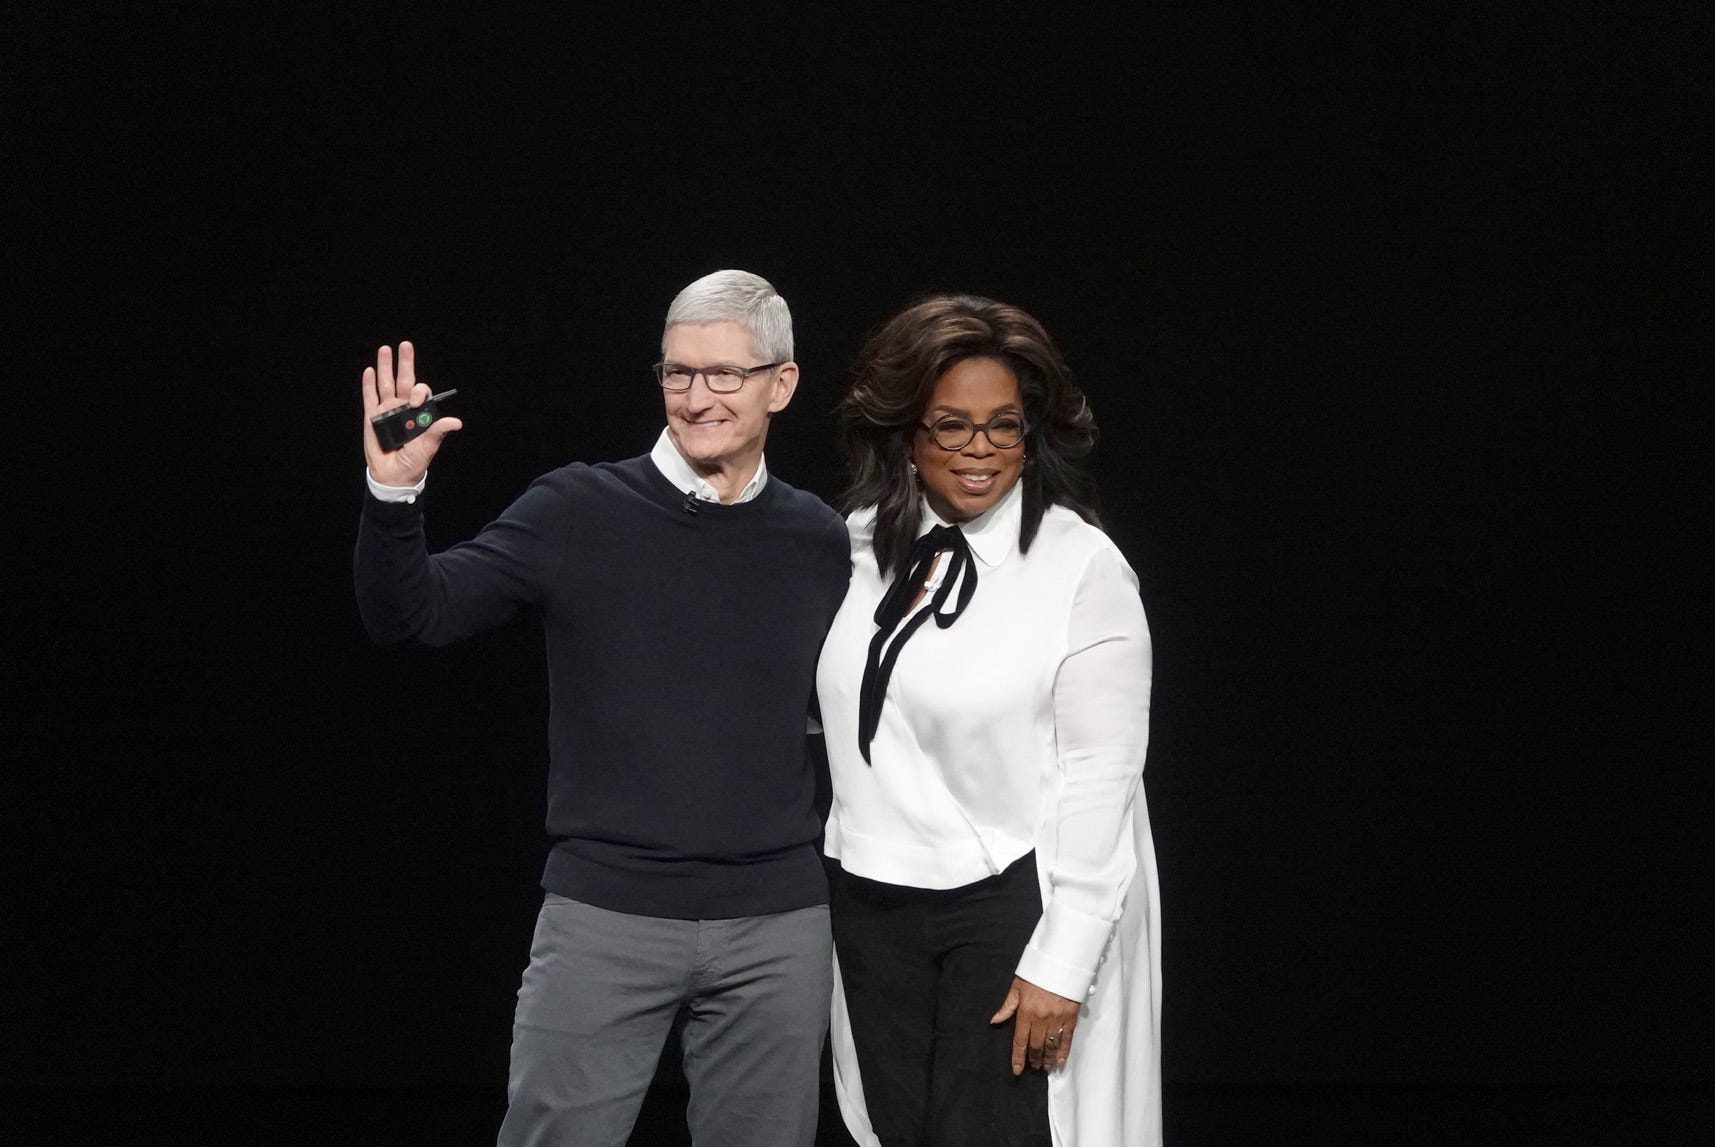 Oprah and Steven Spielberg touted their Apple TV shows, but when will we actually see them?